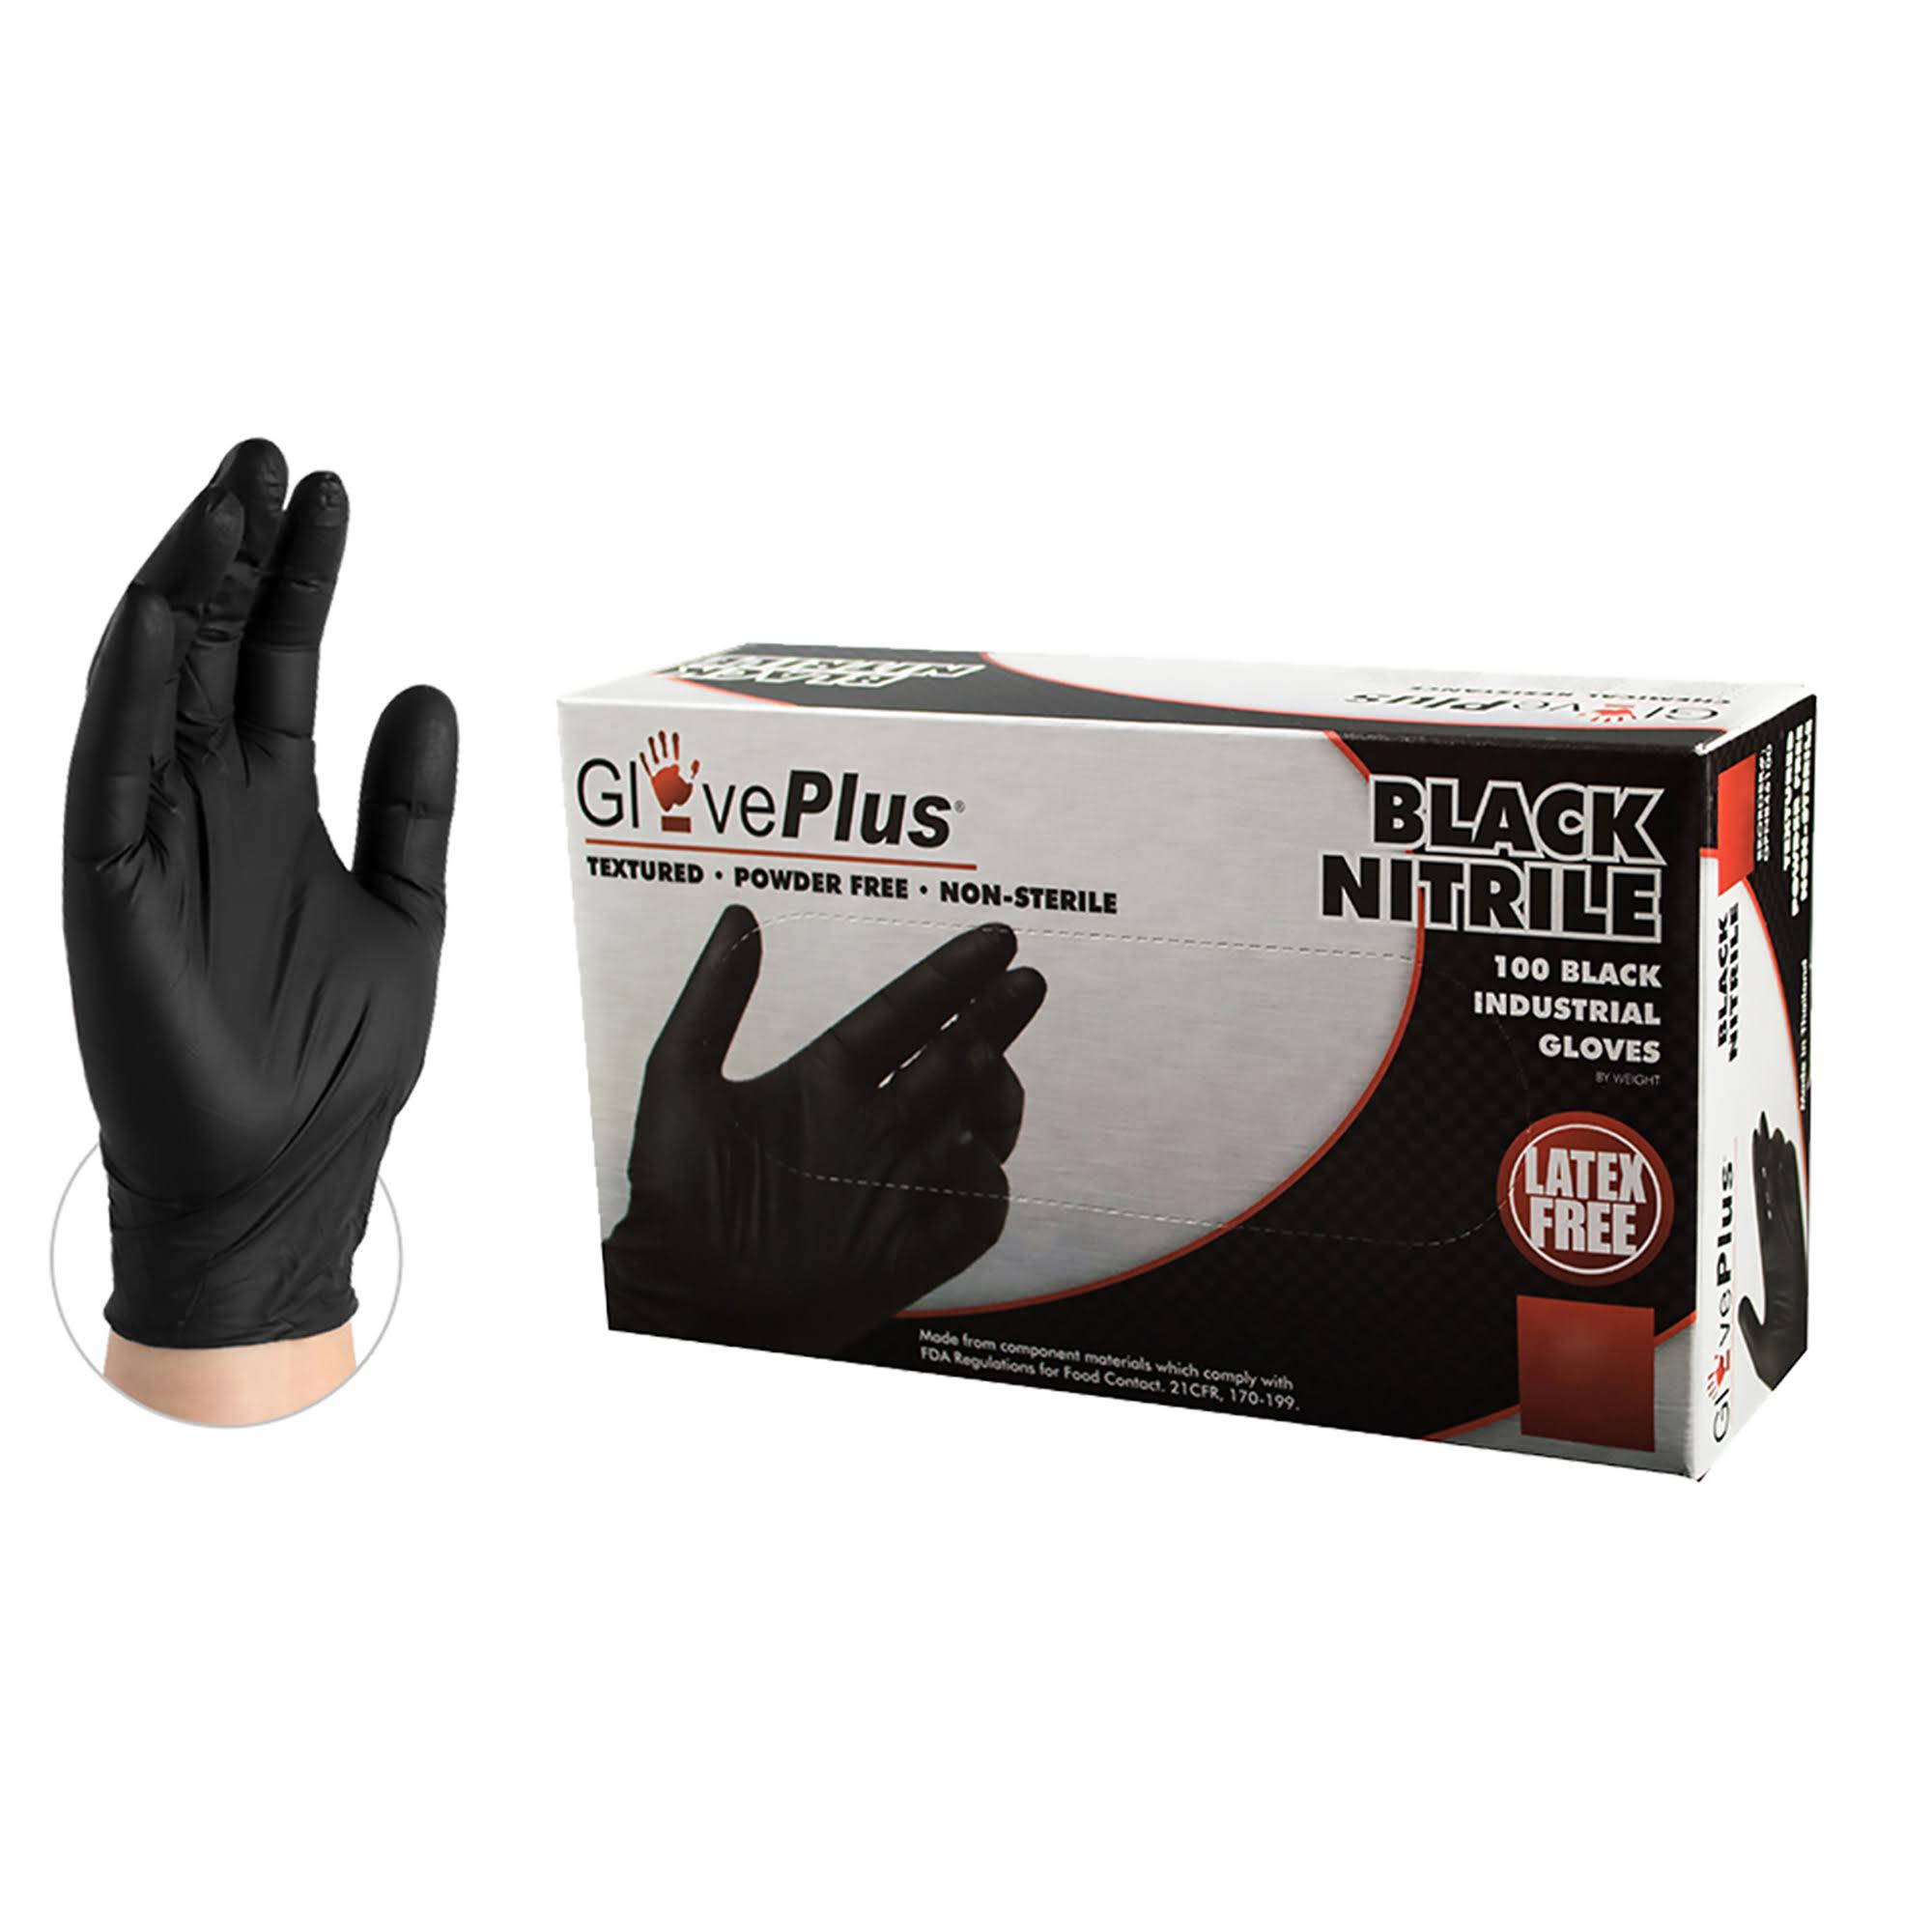 Ammex Nitrile Industrial Non Sterile Gloves - Black, 100 Pack